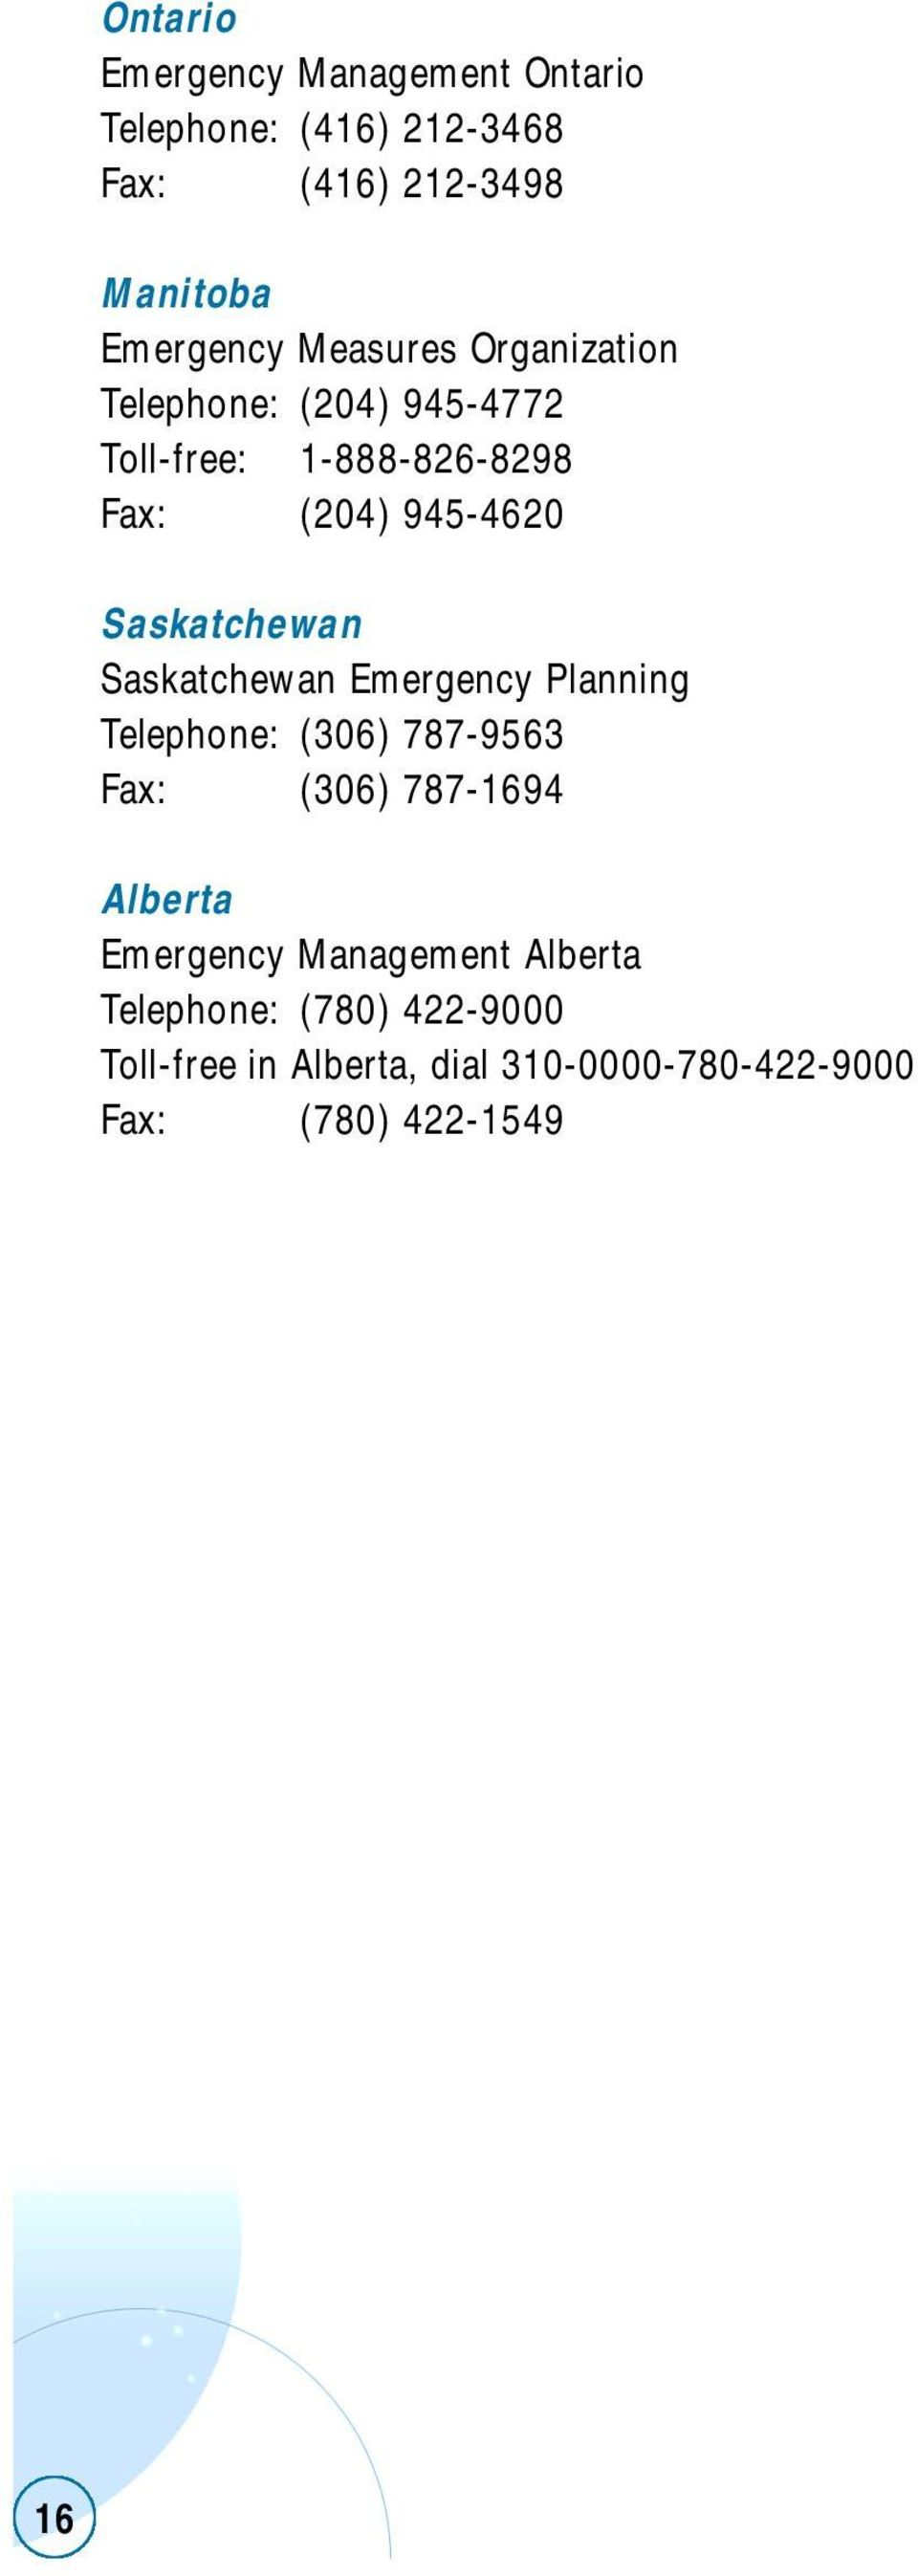 Saskatchewan Saskatchewan Emergency Planning Telephone: (306) 787-9563 Fax: (306) 787-1694 Alberta